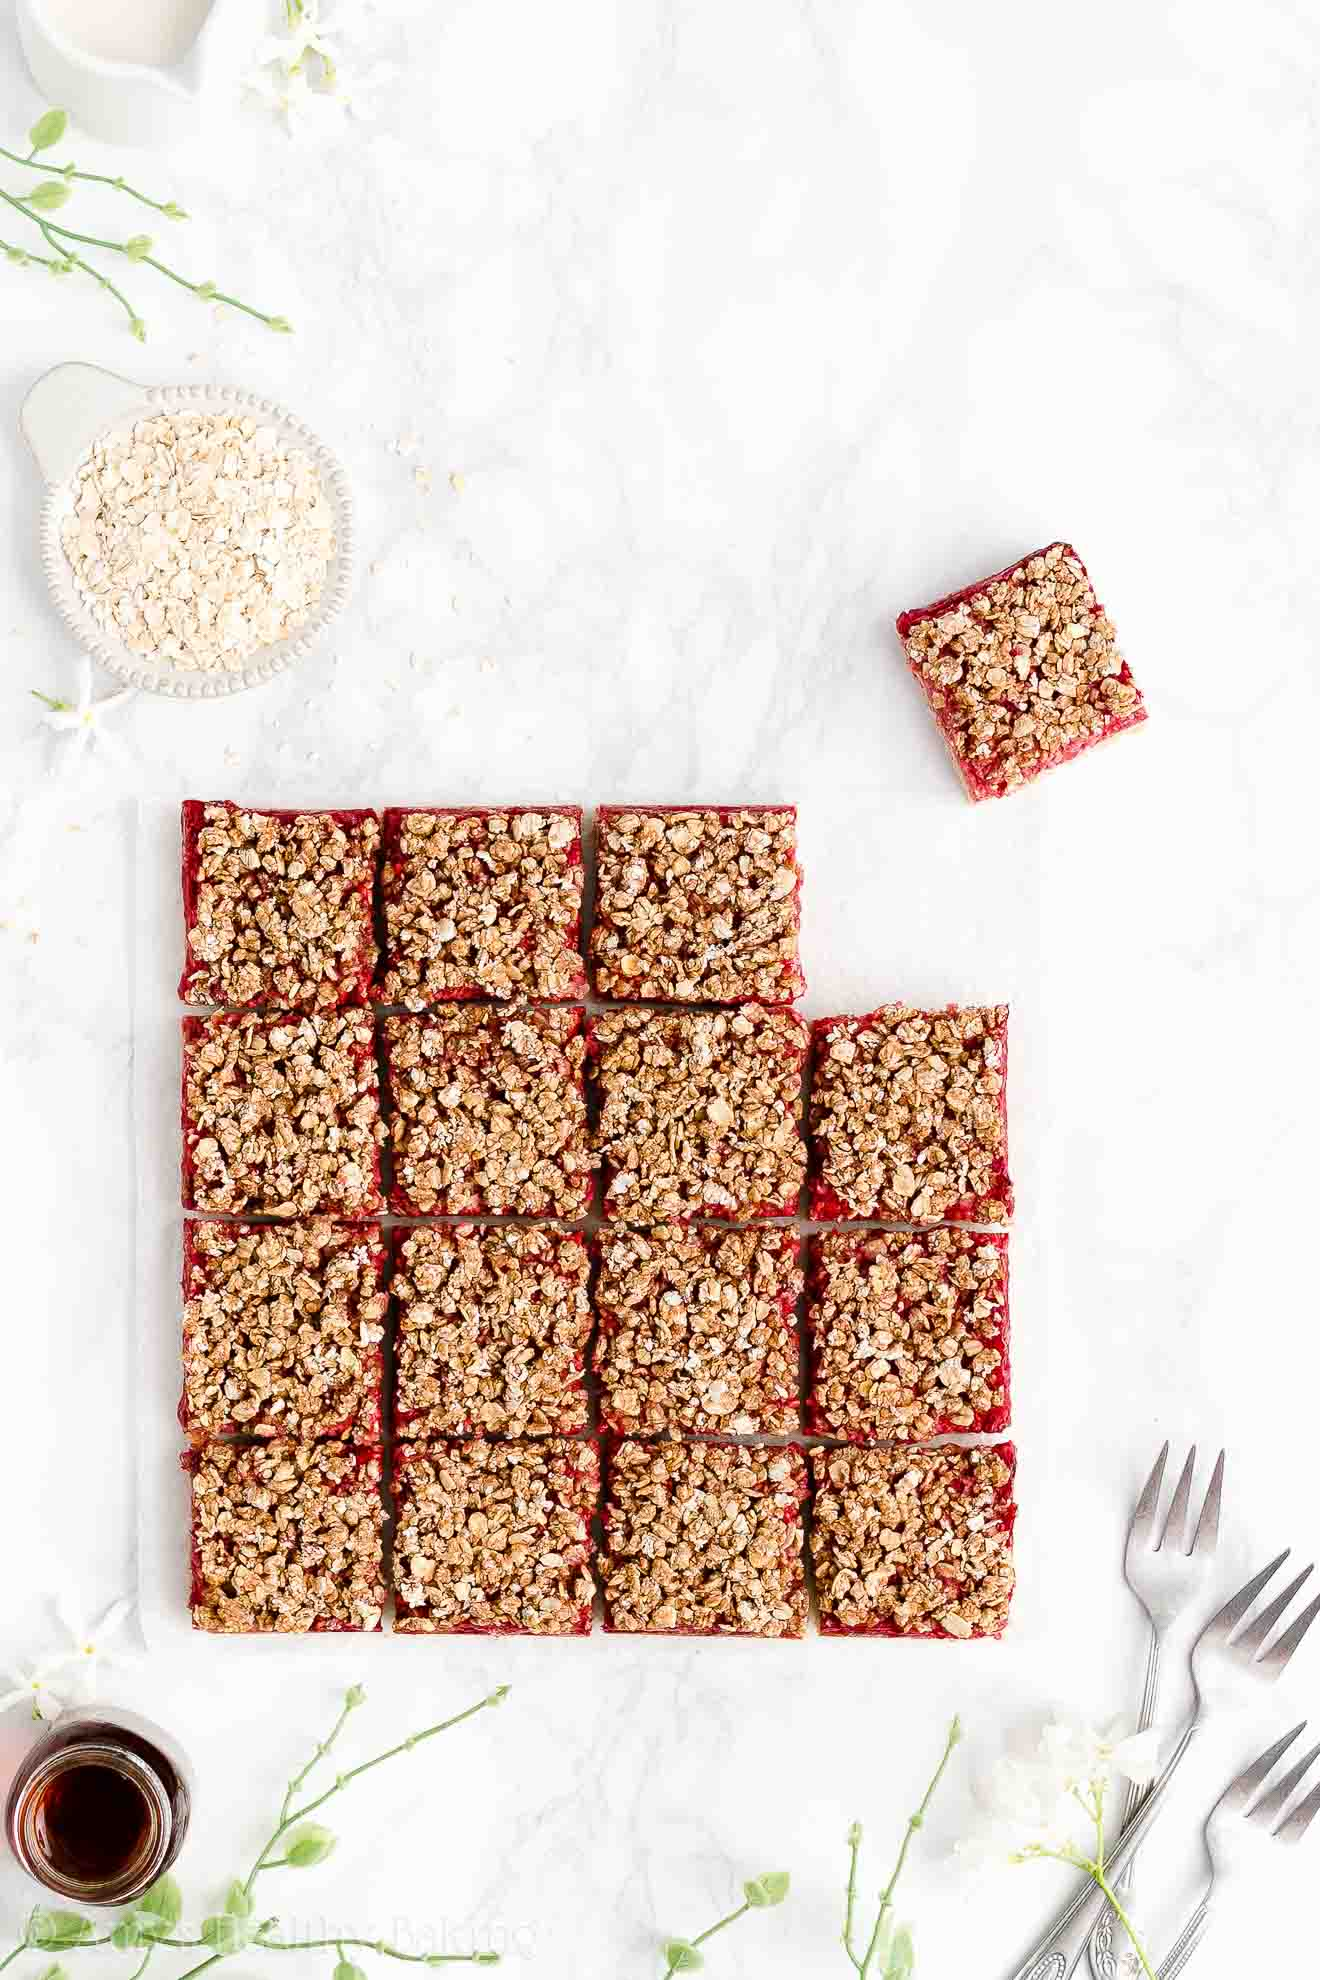 Easy Healthy Clean Eating Gluten Free Fresh Raspberry Oat Crumble Bars